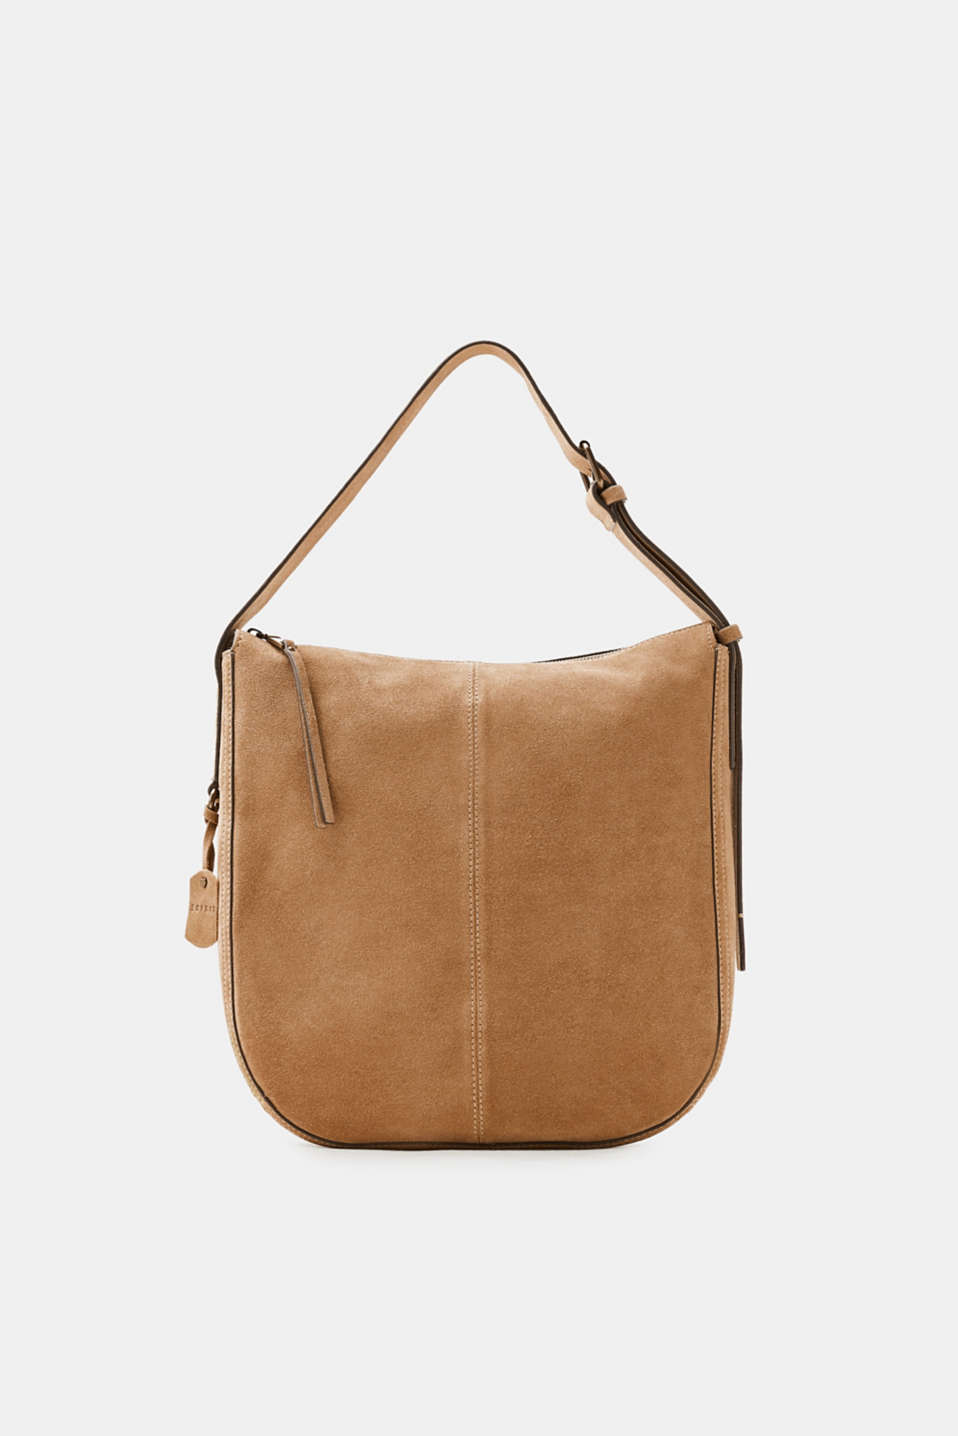 Esprit - Suede hobo bag